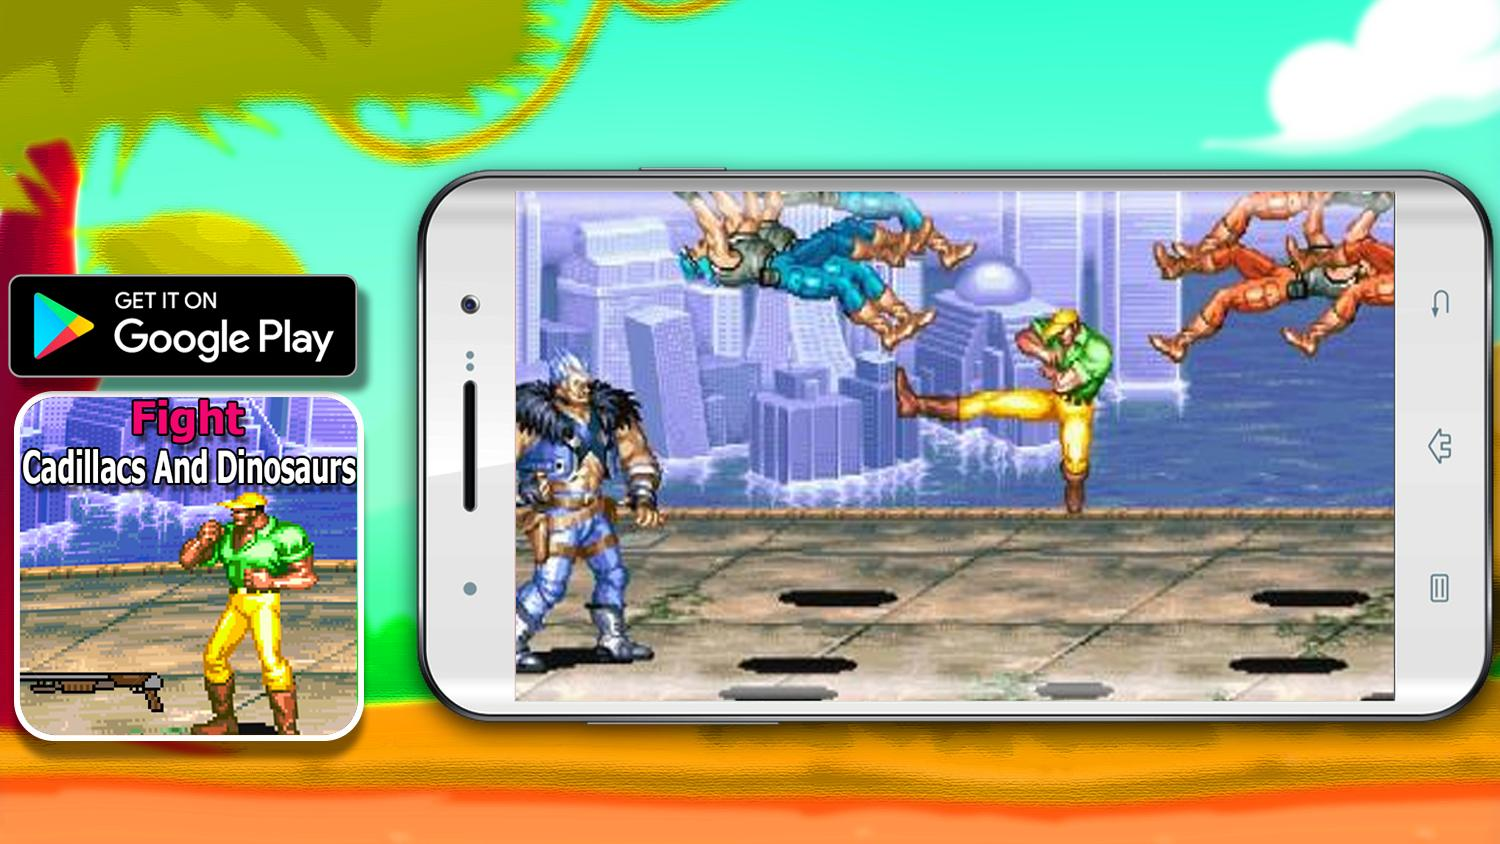 Cadillacs And Dinosaurs Mustapha Game For Android Apk Download Cadillacs & dinosaurios cap 1parte 1/3 (latino). cadillacs and dinosaurs mustapha game